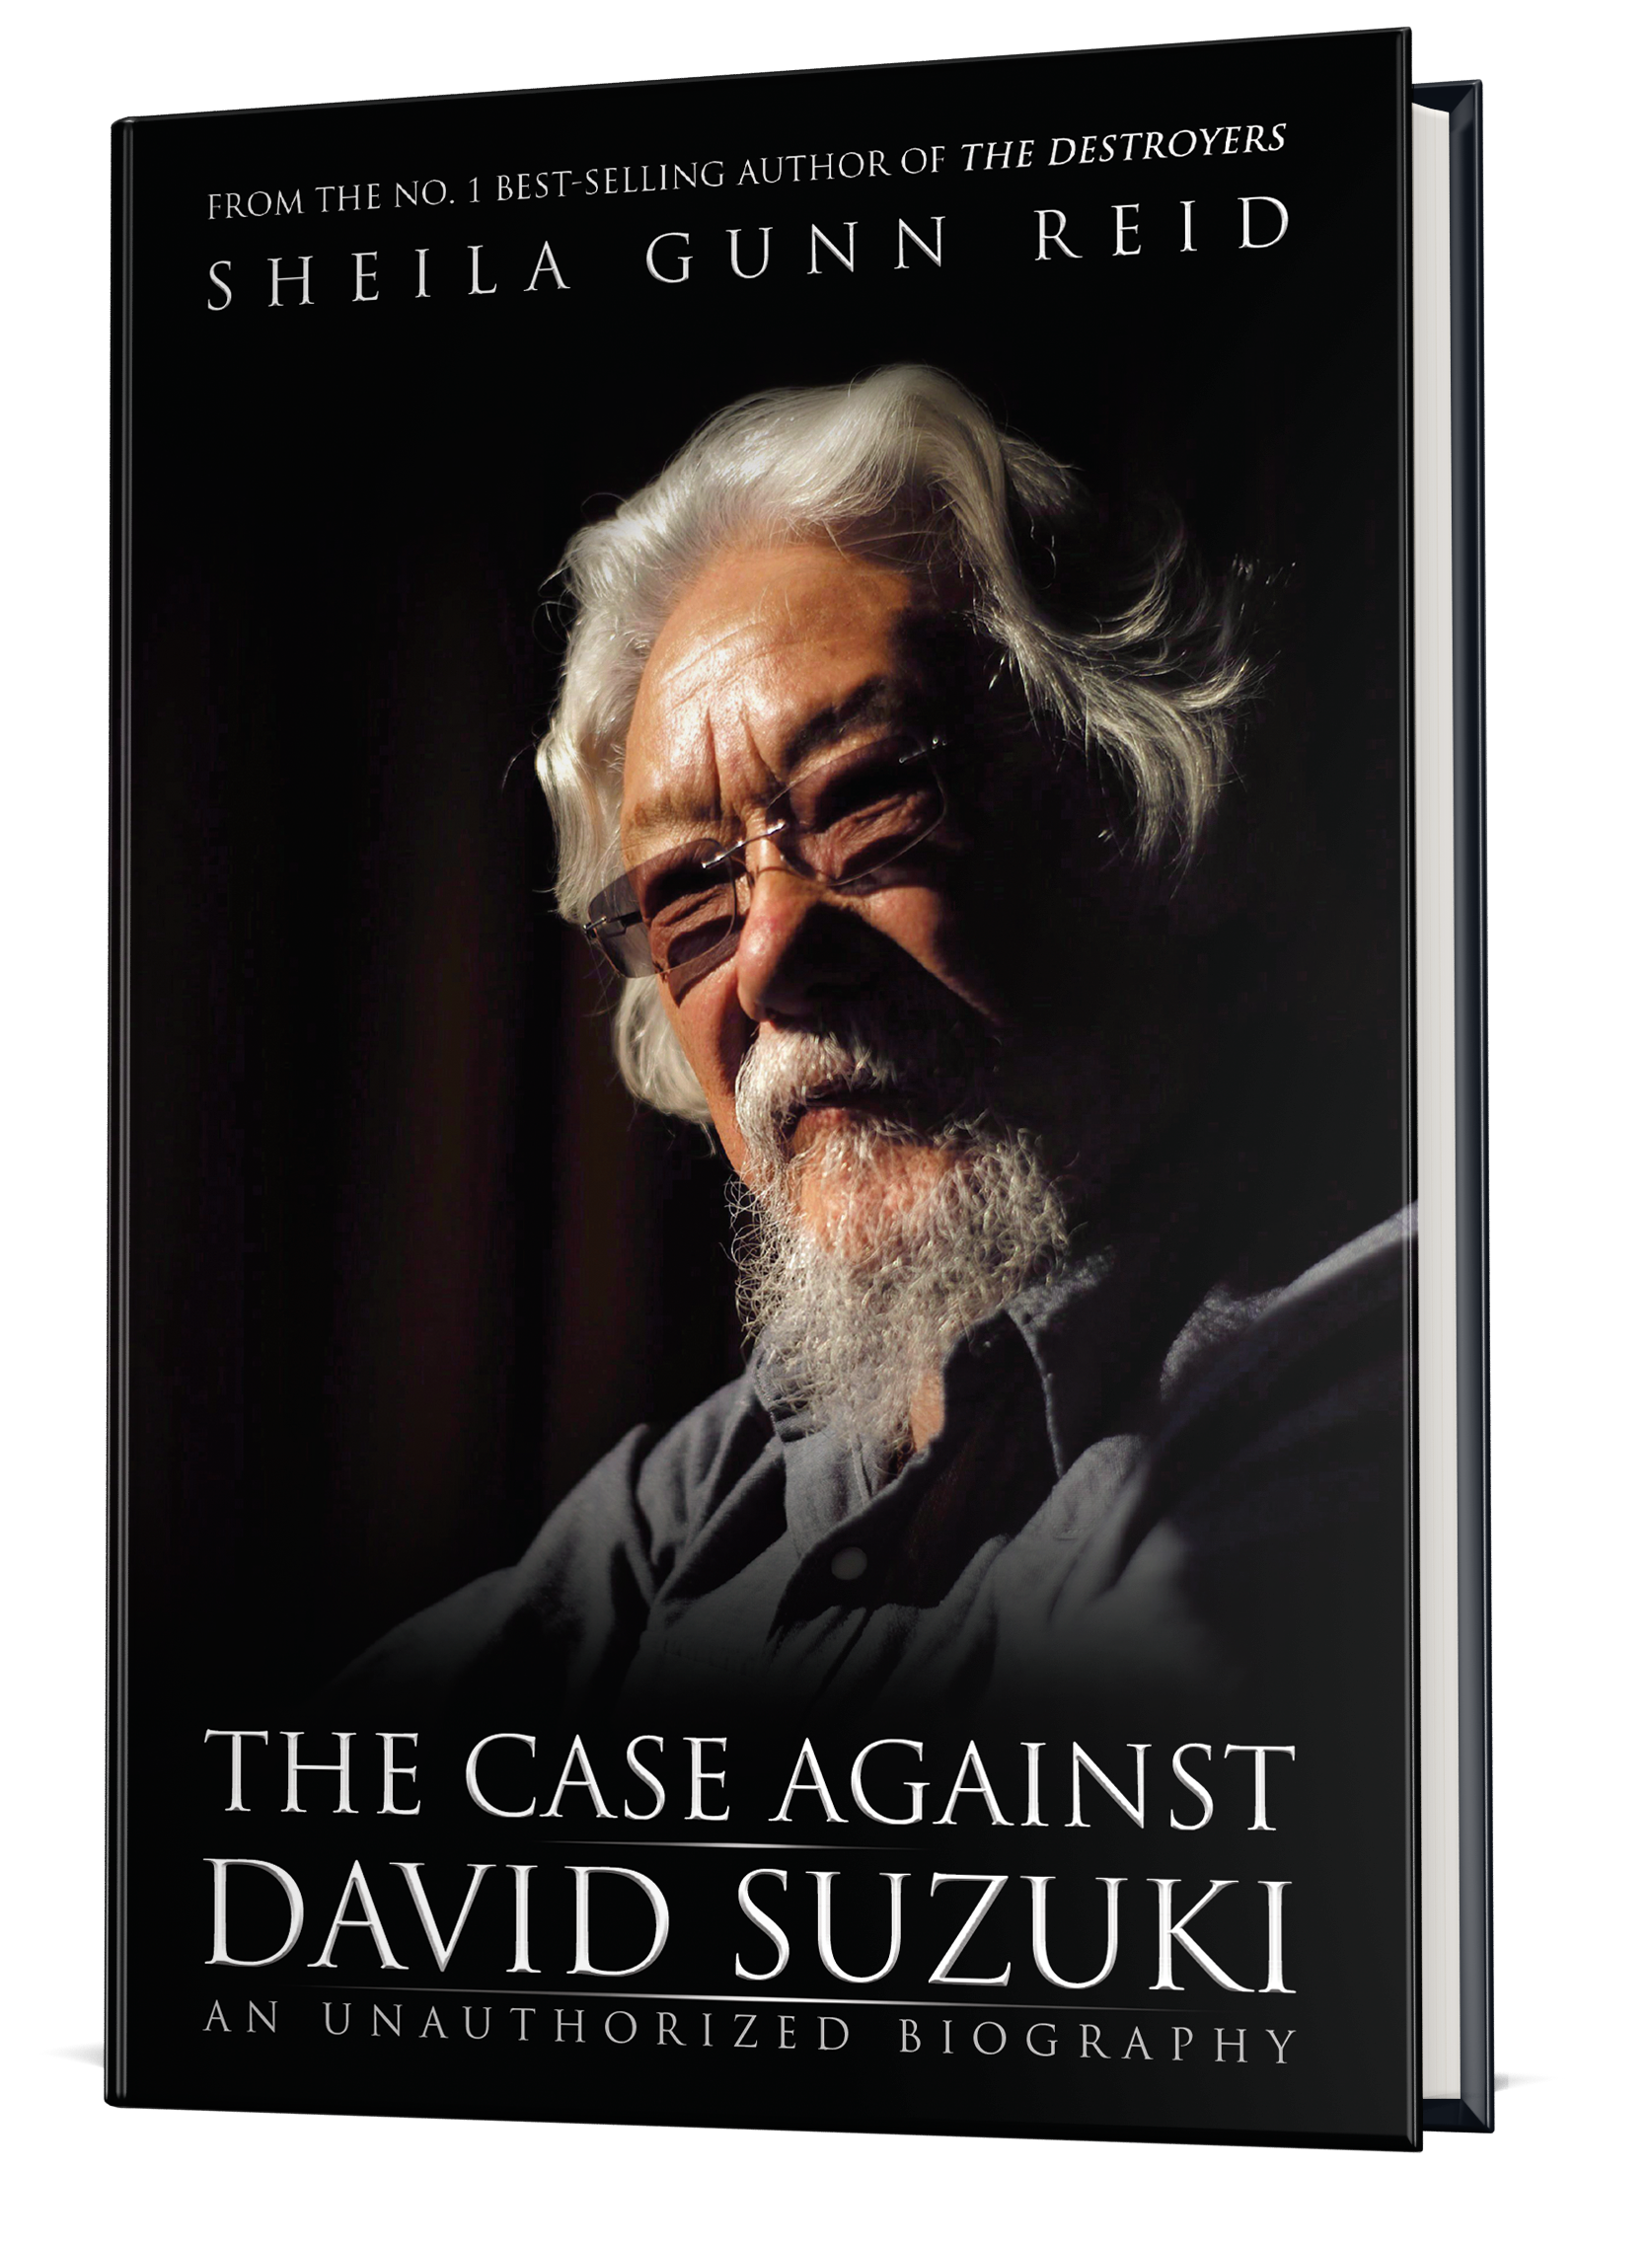 The Case Against David Suzuki